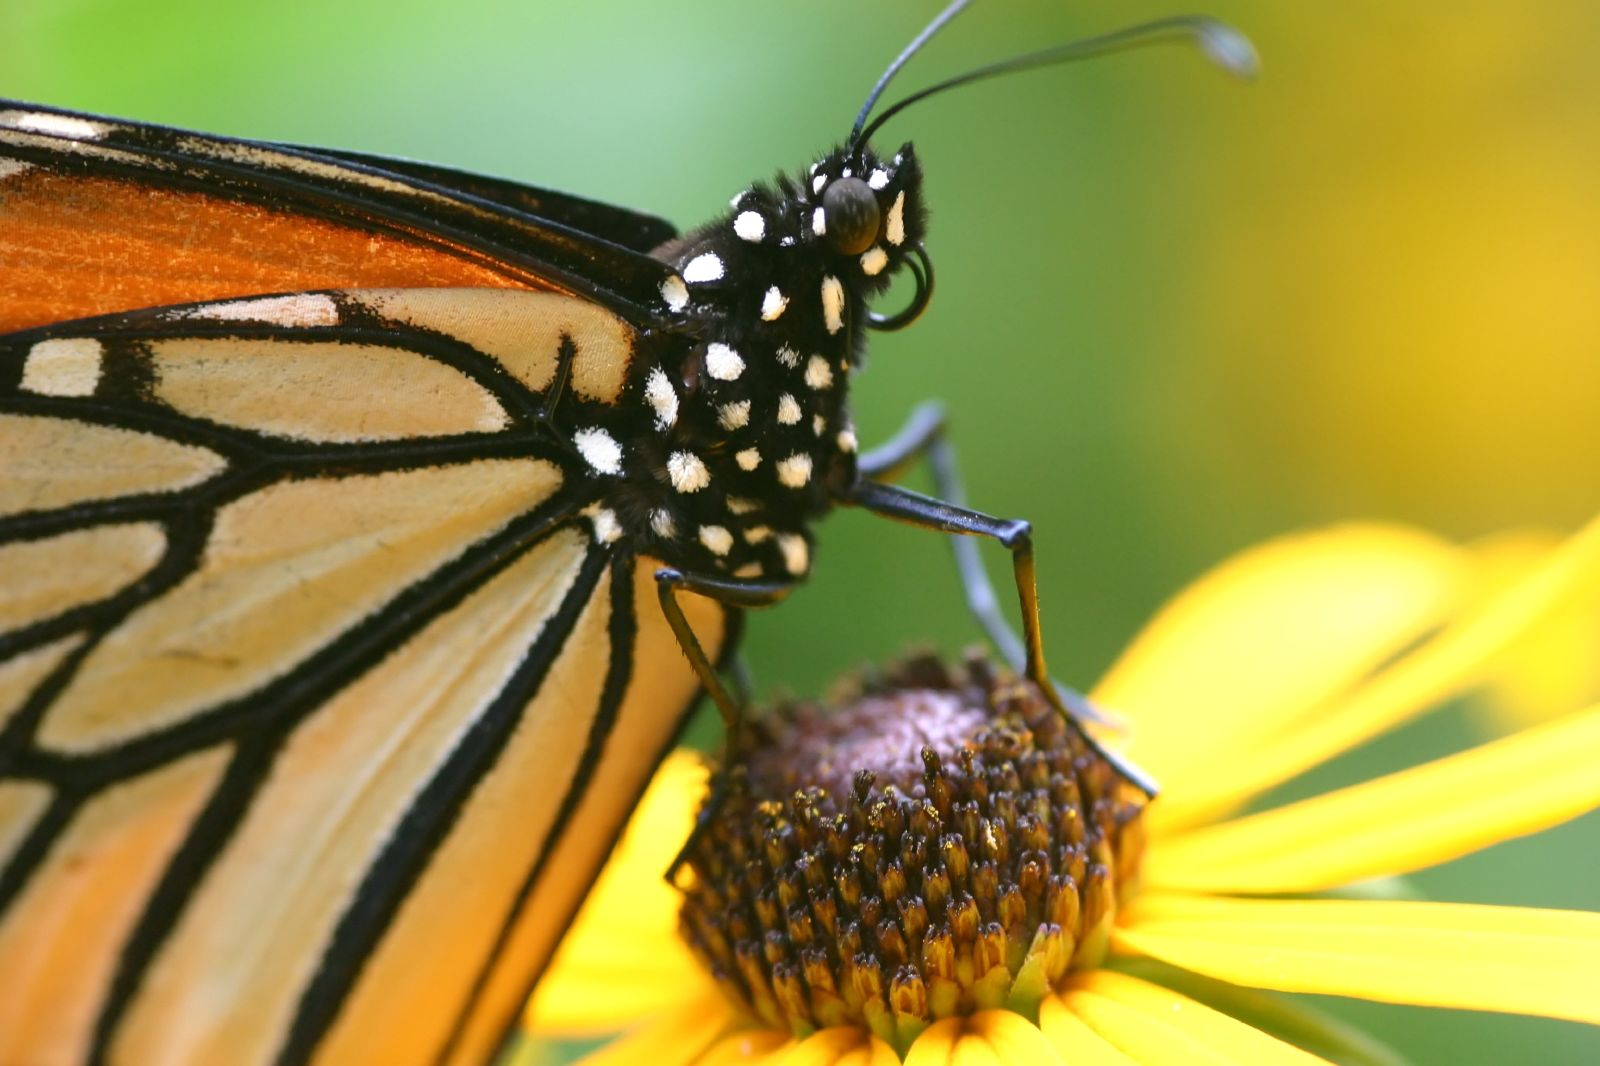 monarch butterflies coevolution with milkweed essay Essay on monarch butterfly 1002 words   5 pages the monarch butterfly, as known as danaus plexippus, is often called the milkweed butterfly because its larvae eat the milkweed plant.